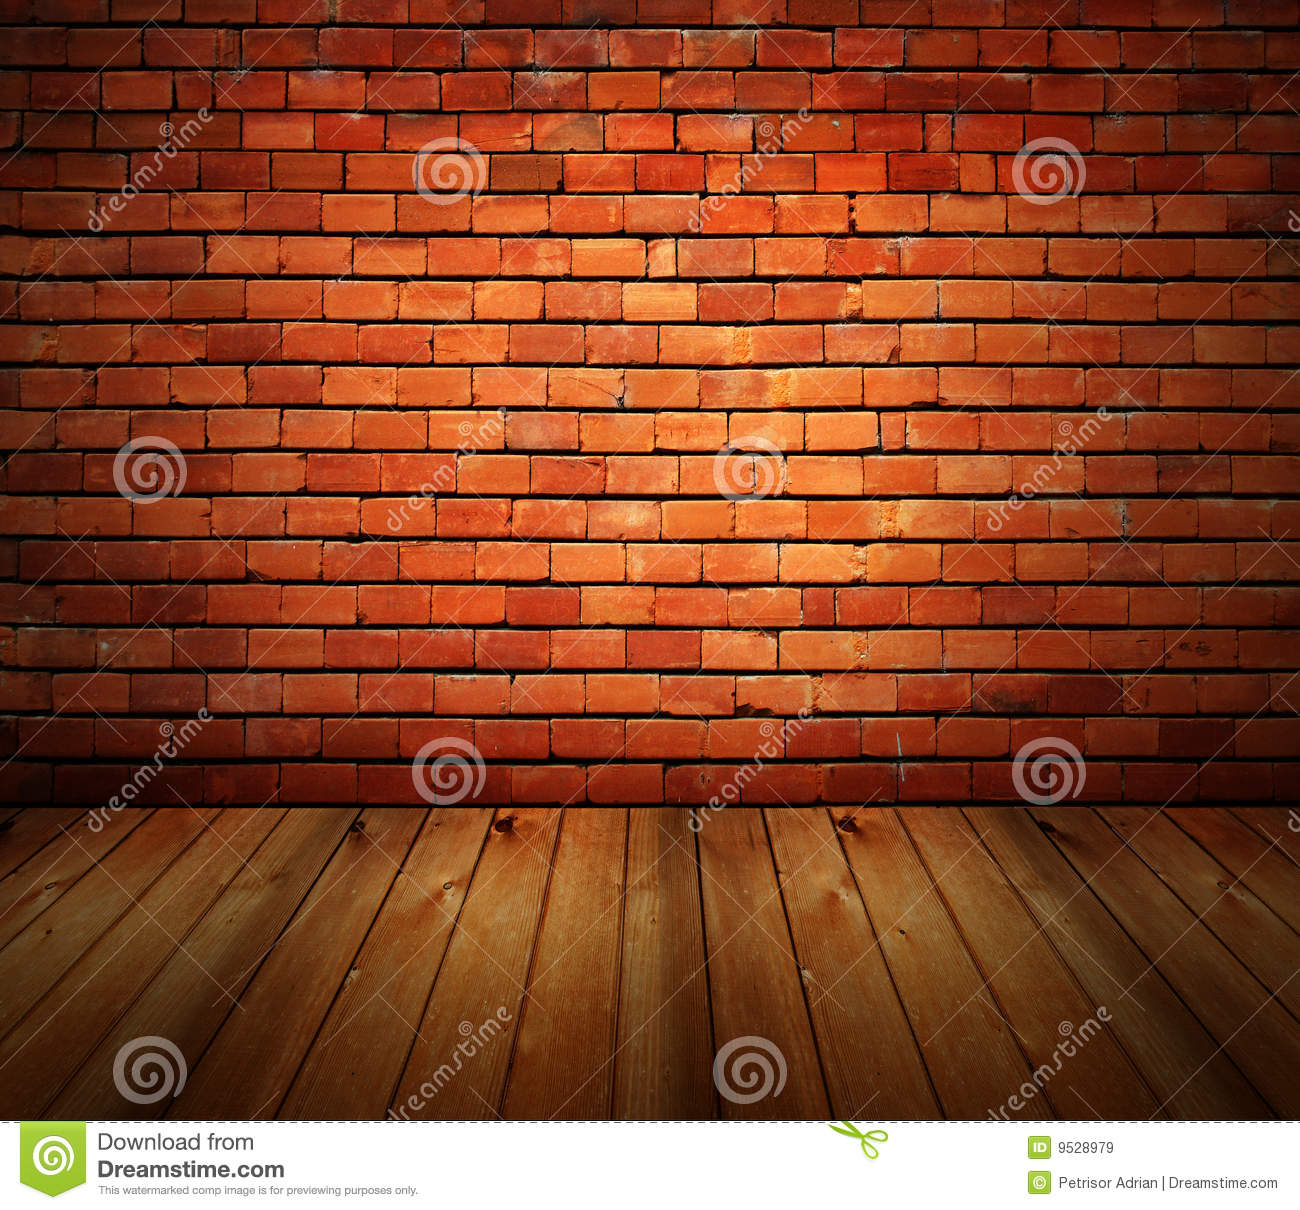 Brick Wall Interior House House Interior Grunge Brick Wall And Wood Floor Royalty Free Stock